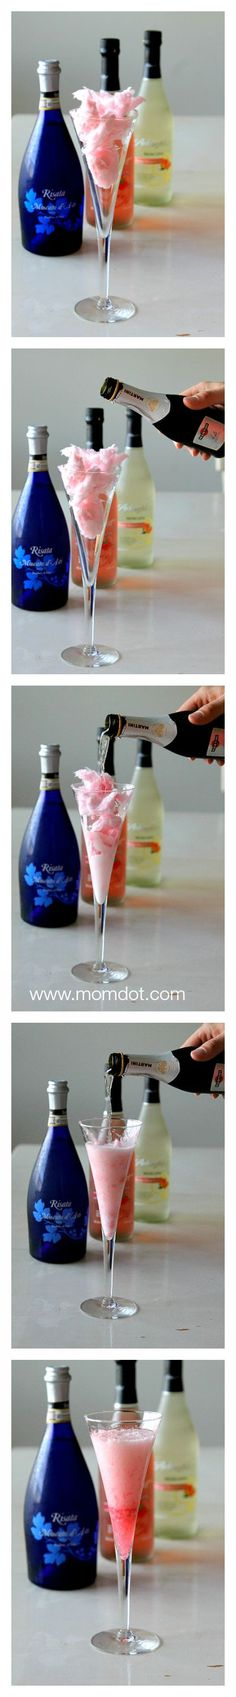 Add a little Cotton Candy to your Champagne